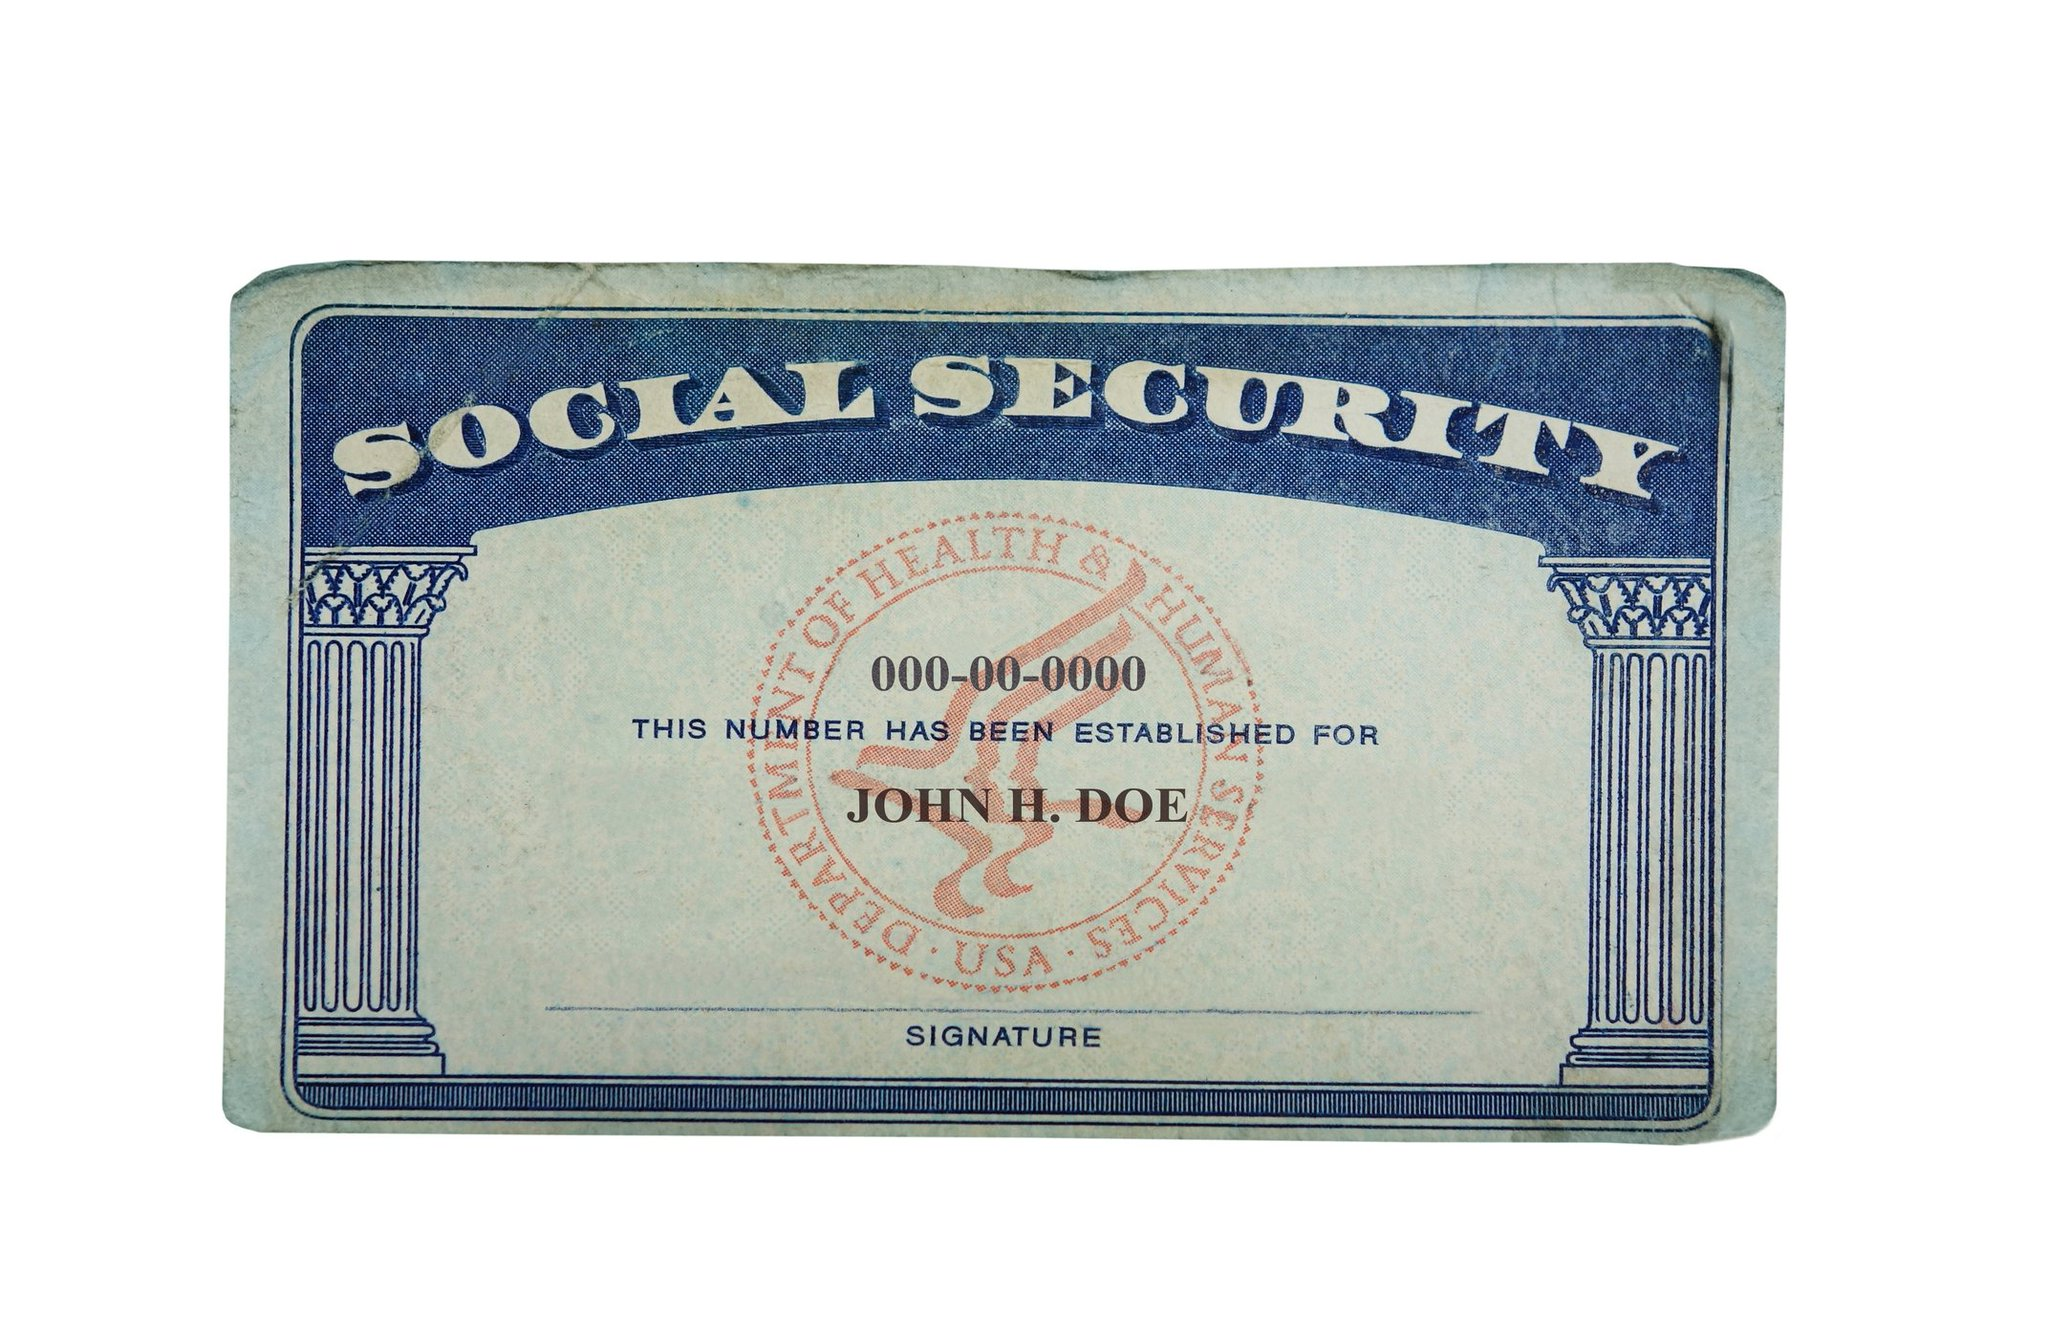 """#SocialSecurity and Medicare are Financially Sound, Not """"Going Bankrupt,"""" says Trustees Report: https://t.co/XpqGbEV0vR https://t.co/lvGoyyOzZa"""